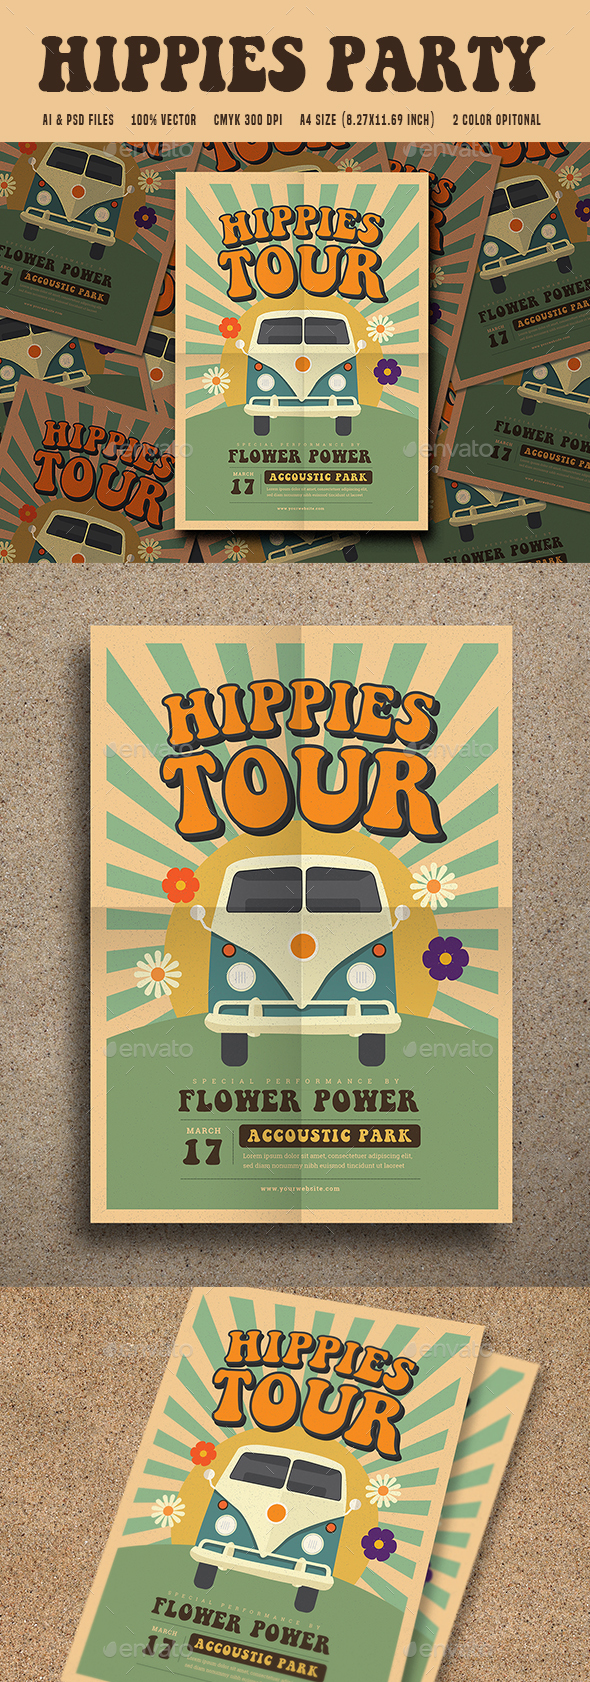 Hippies Party Flyer - Events Flyers